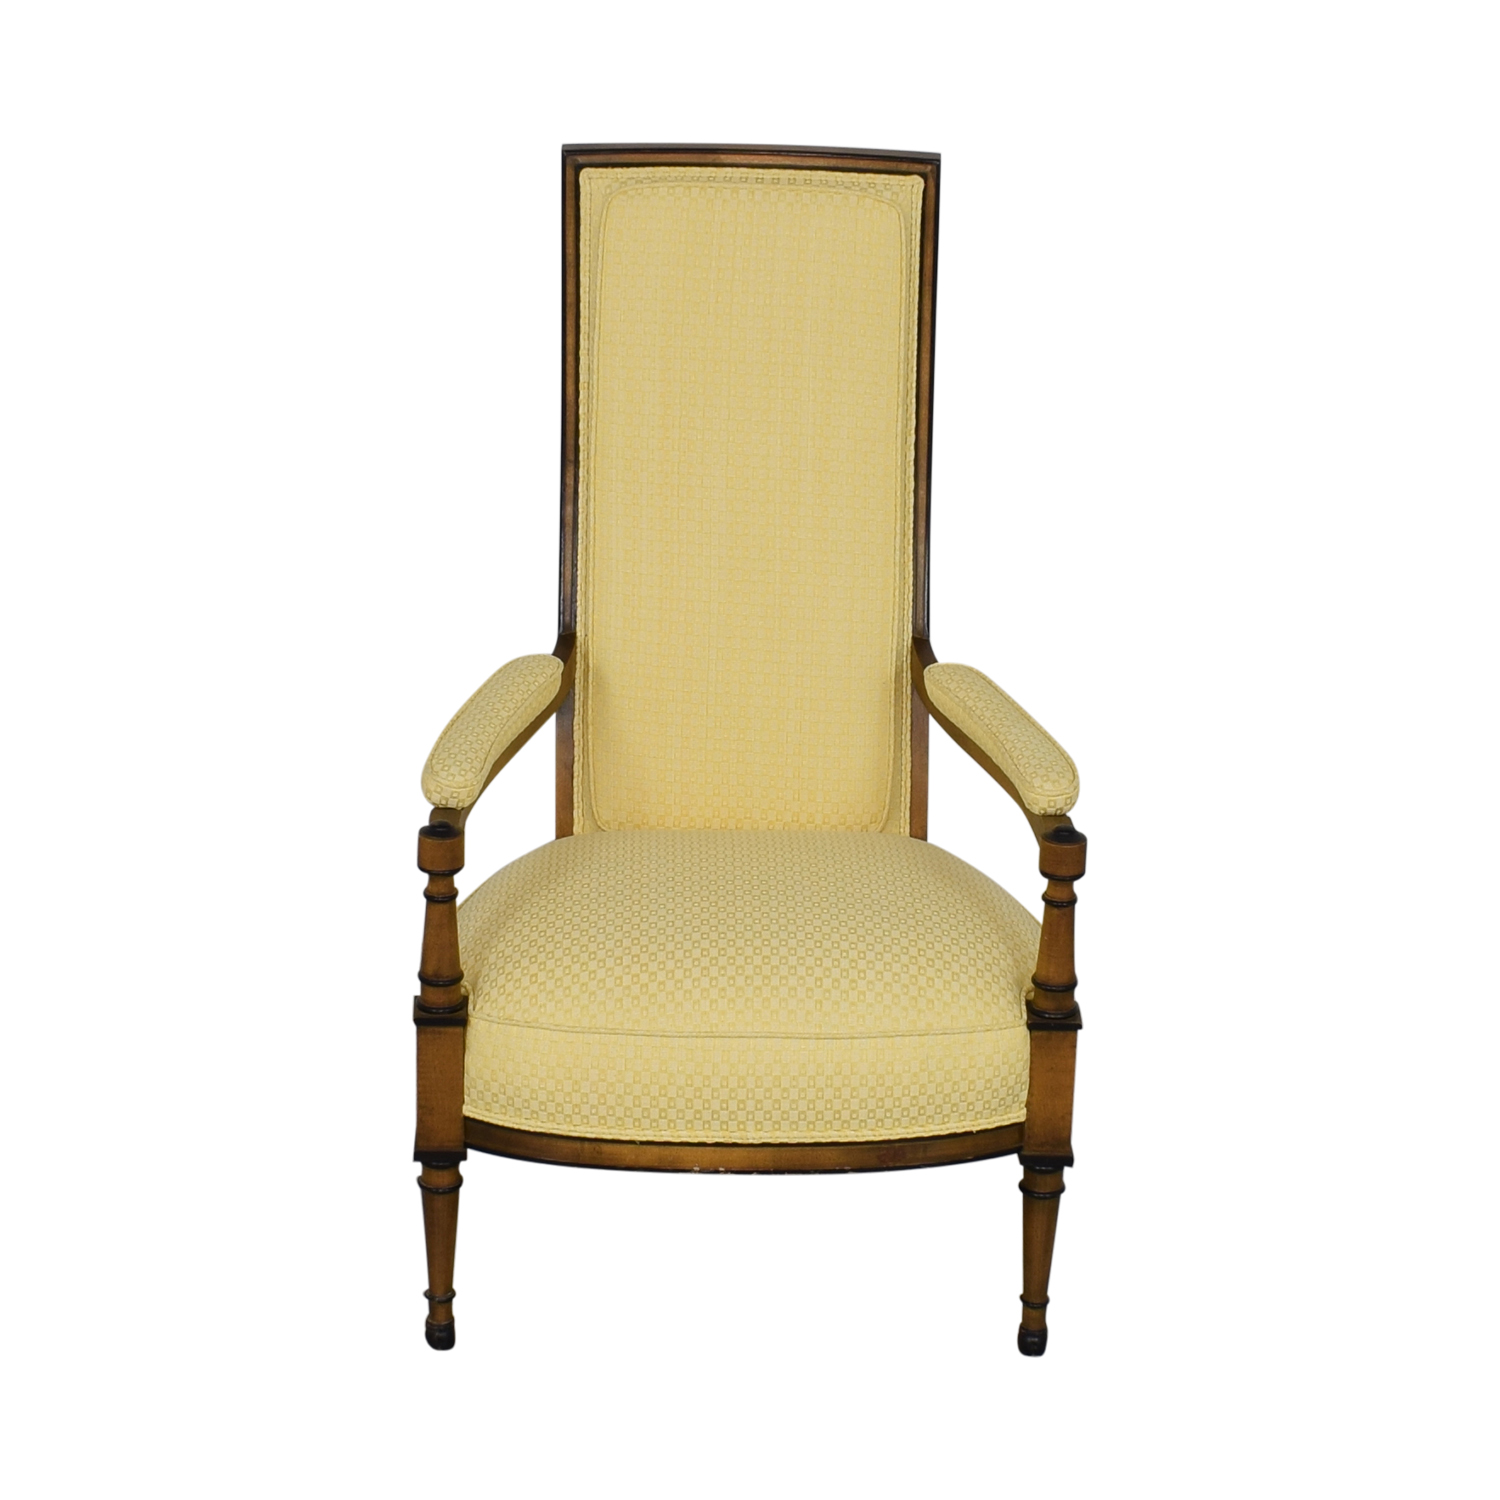 Fabulous 32 Off Upholstered High Back Chair Chairs Ibusinesslaw Wood Chair Design Ideas Ibusinesslaworg